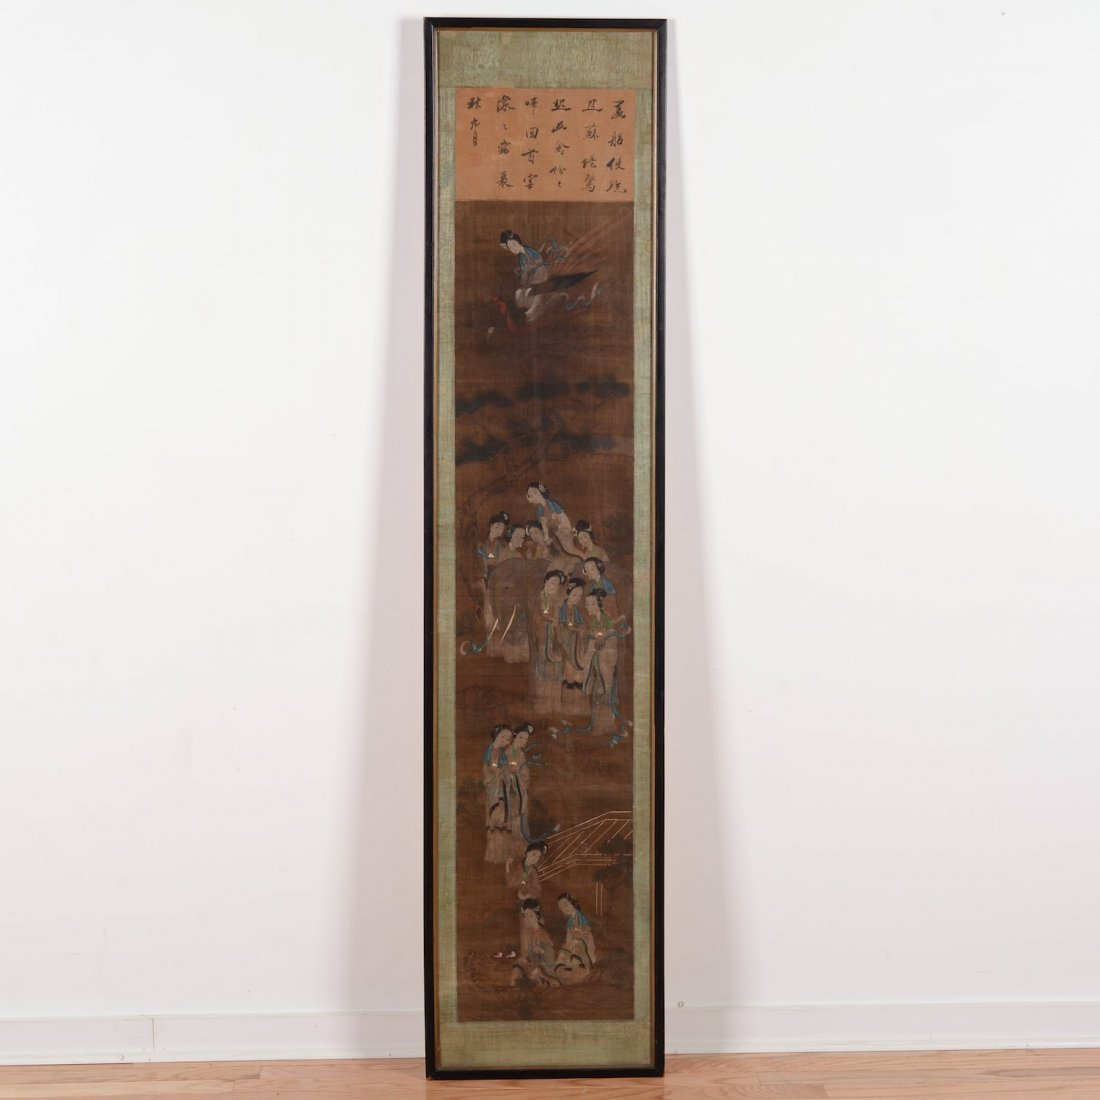 Chinese School (18th/19th c.), scroll painting